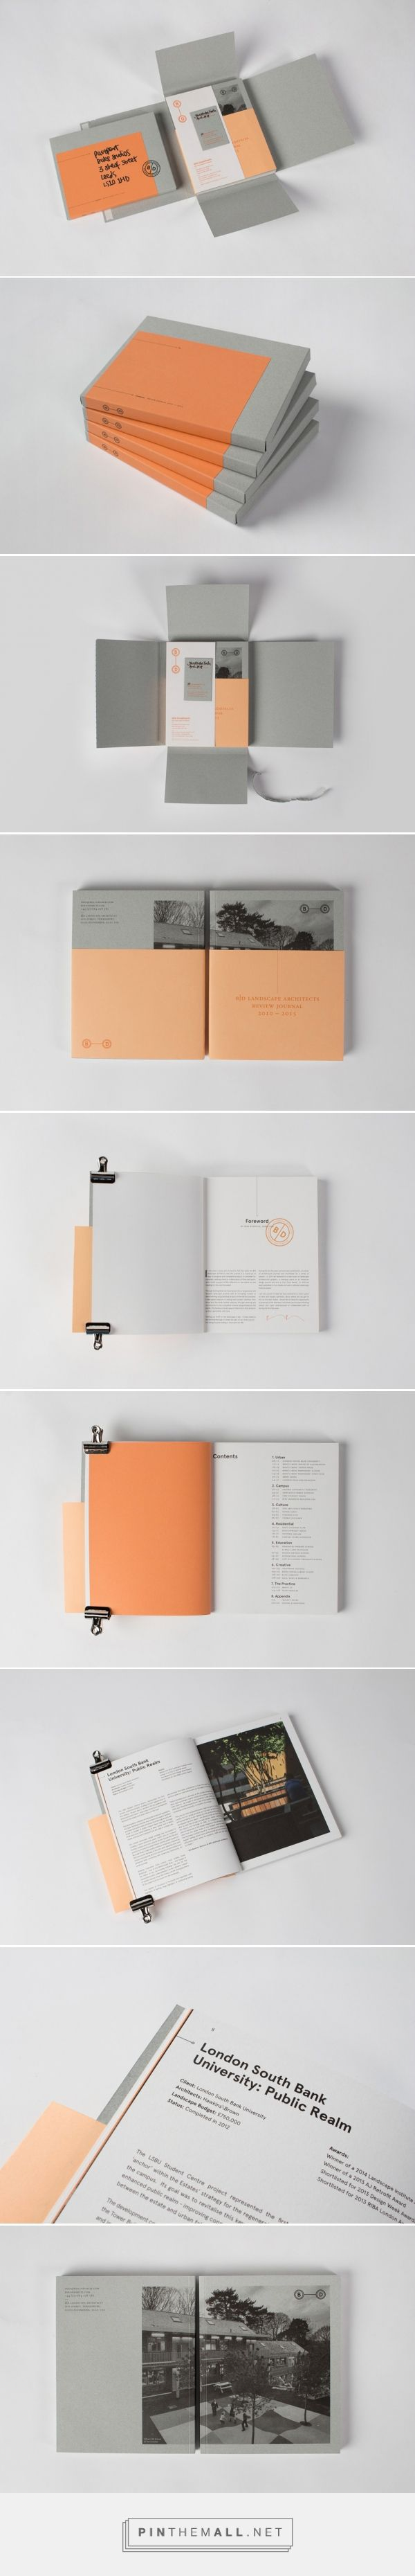 17 best ideas about booklet design on pinterest editorial layout booklet layout and editorial - Booklet Design Ideas